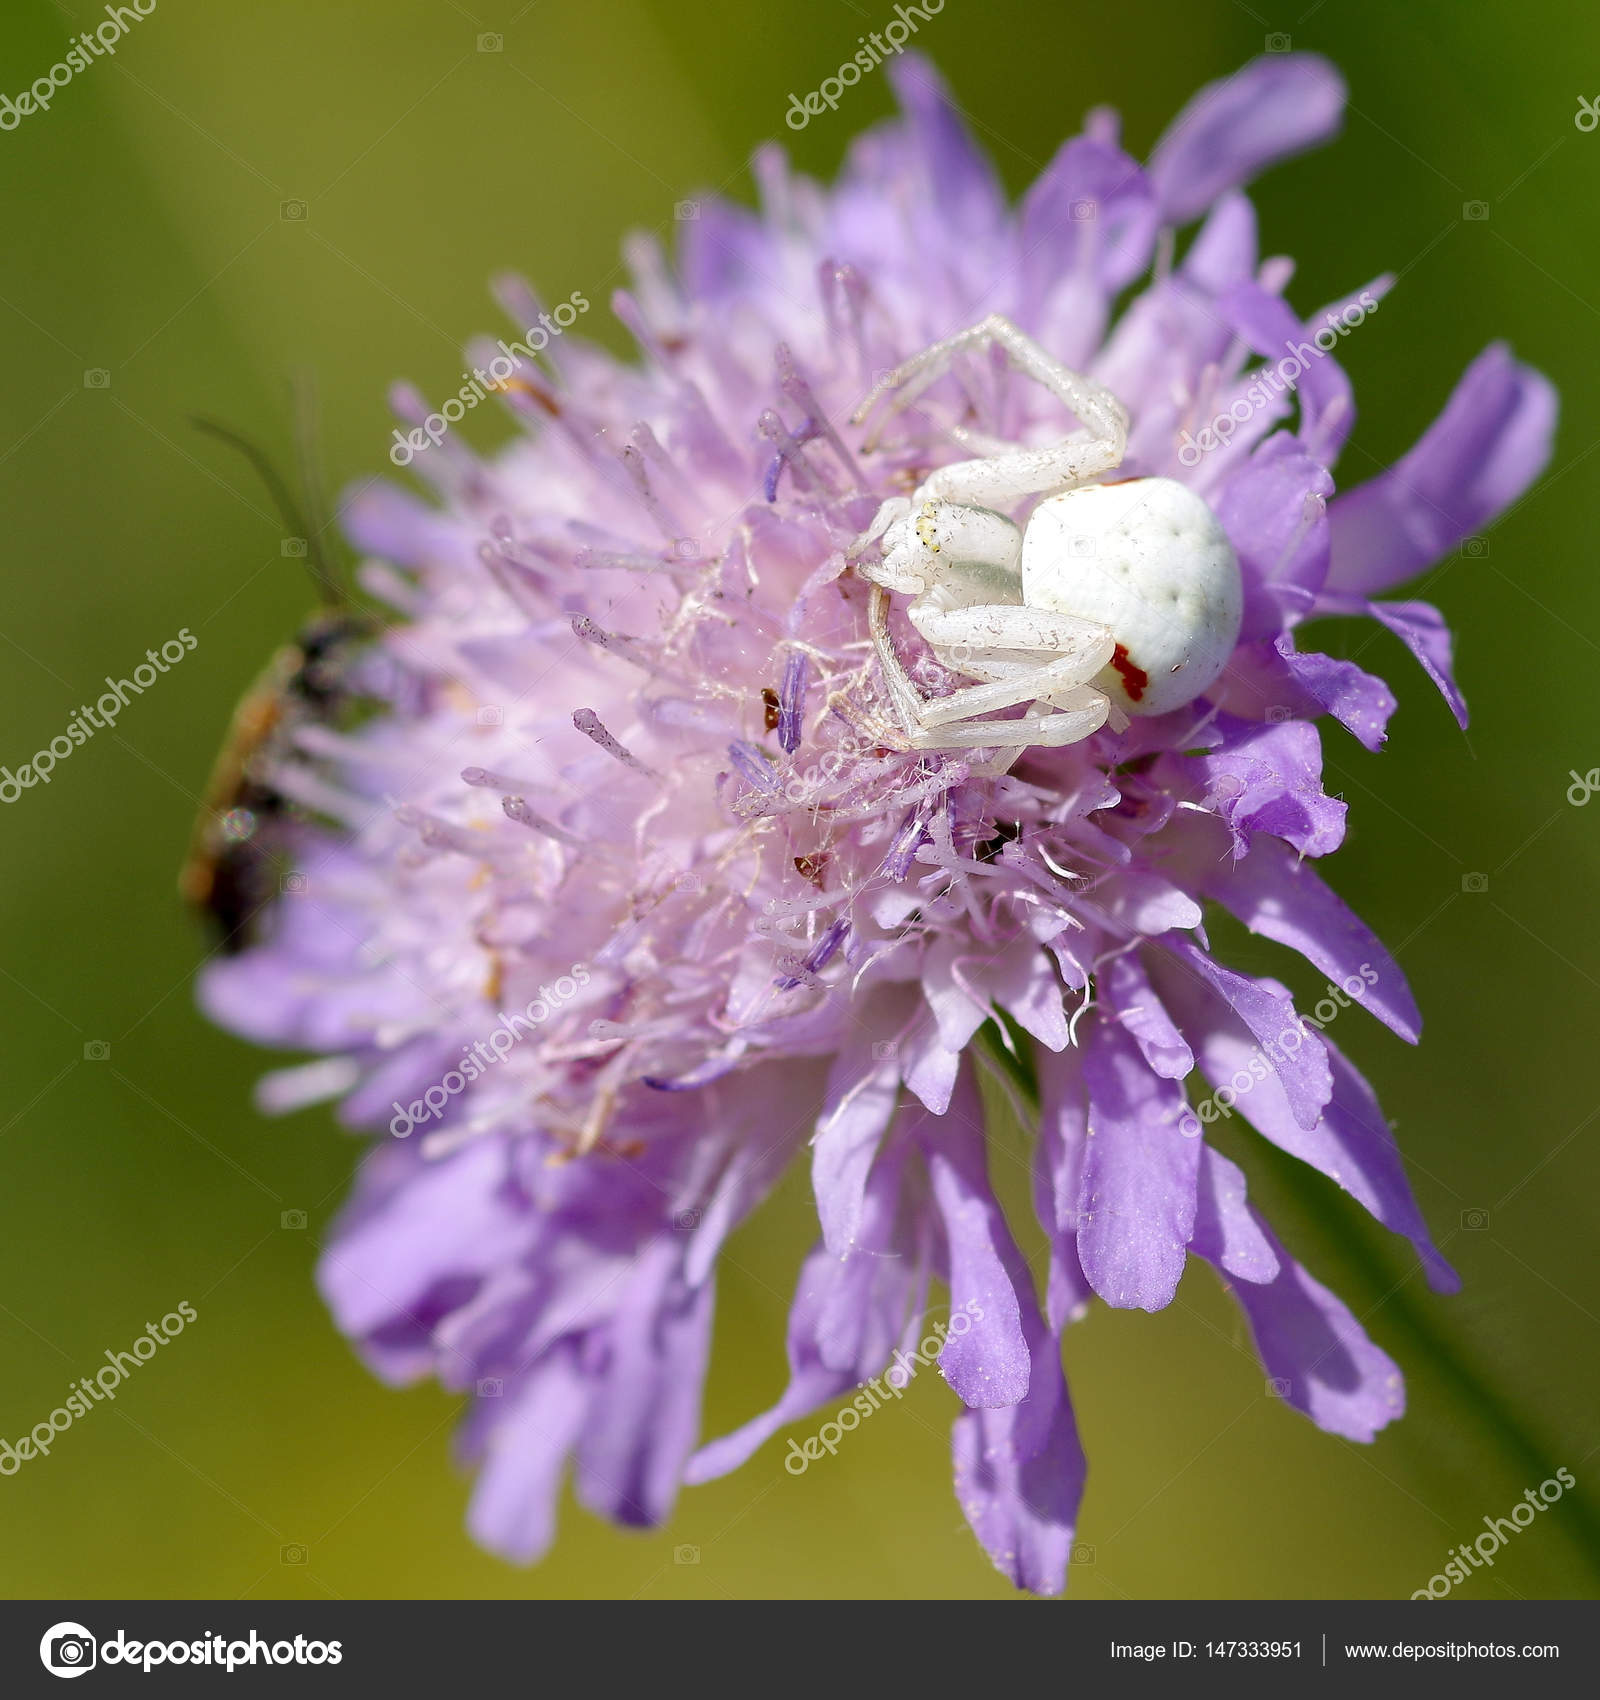 White Spider On Flower Stock Photo Ludovikus1 147333951